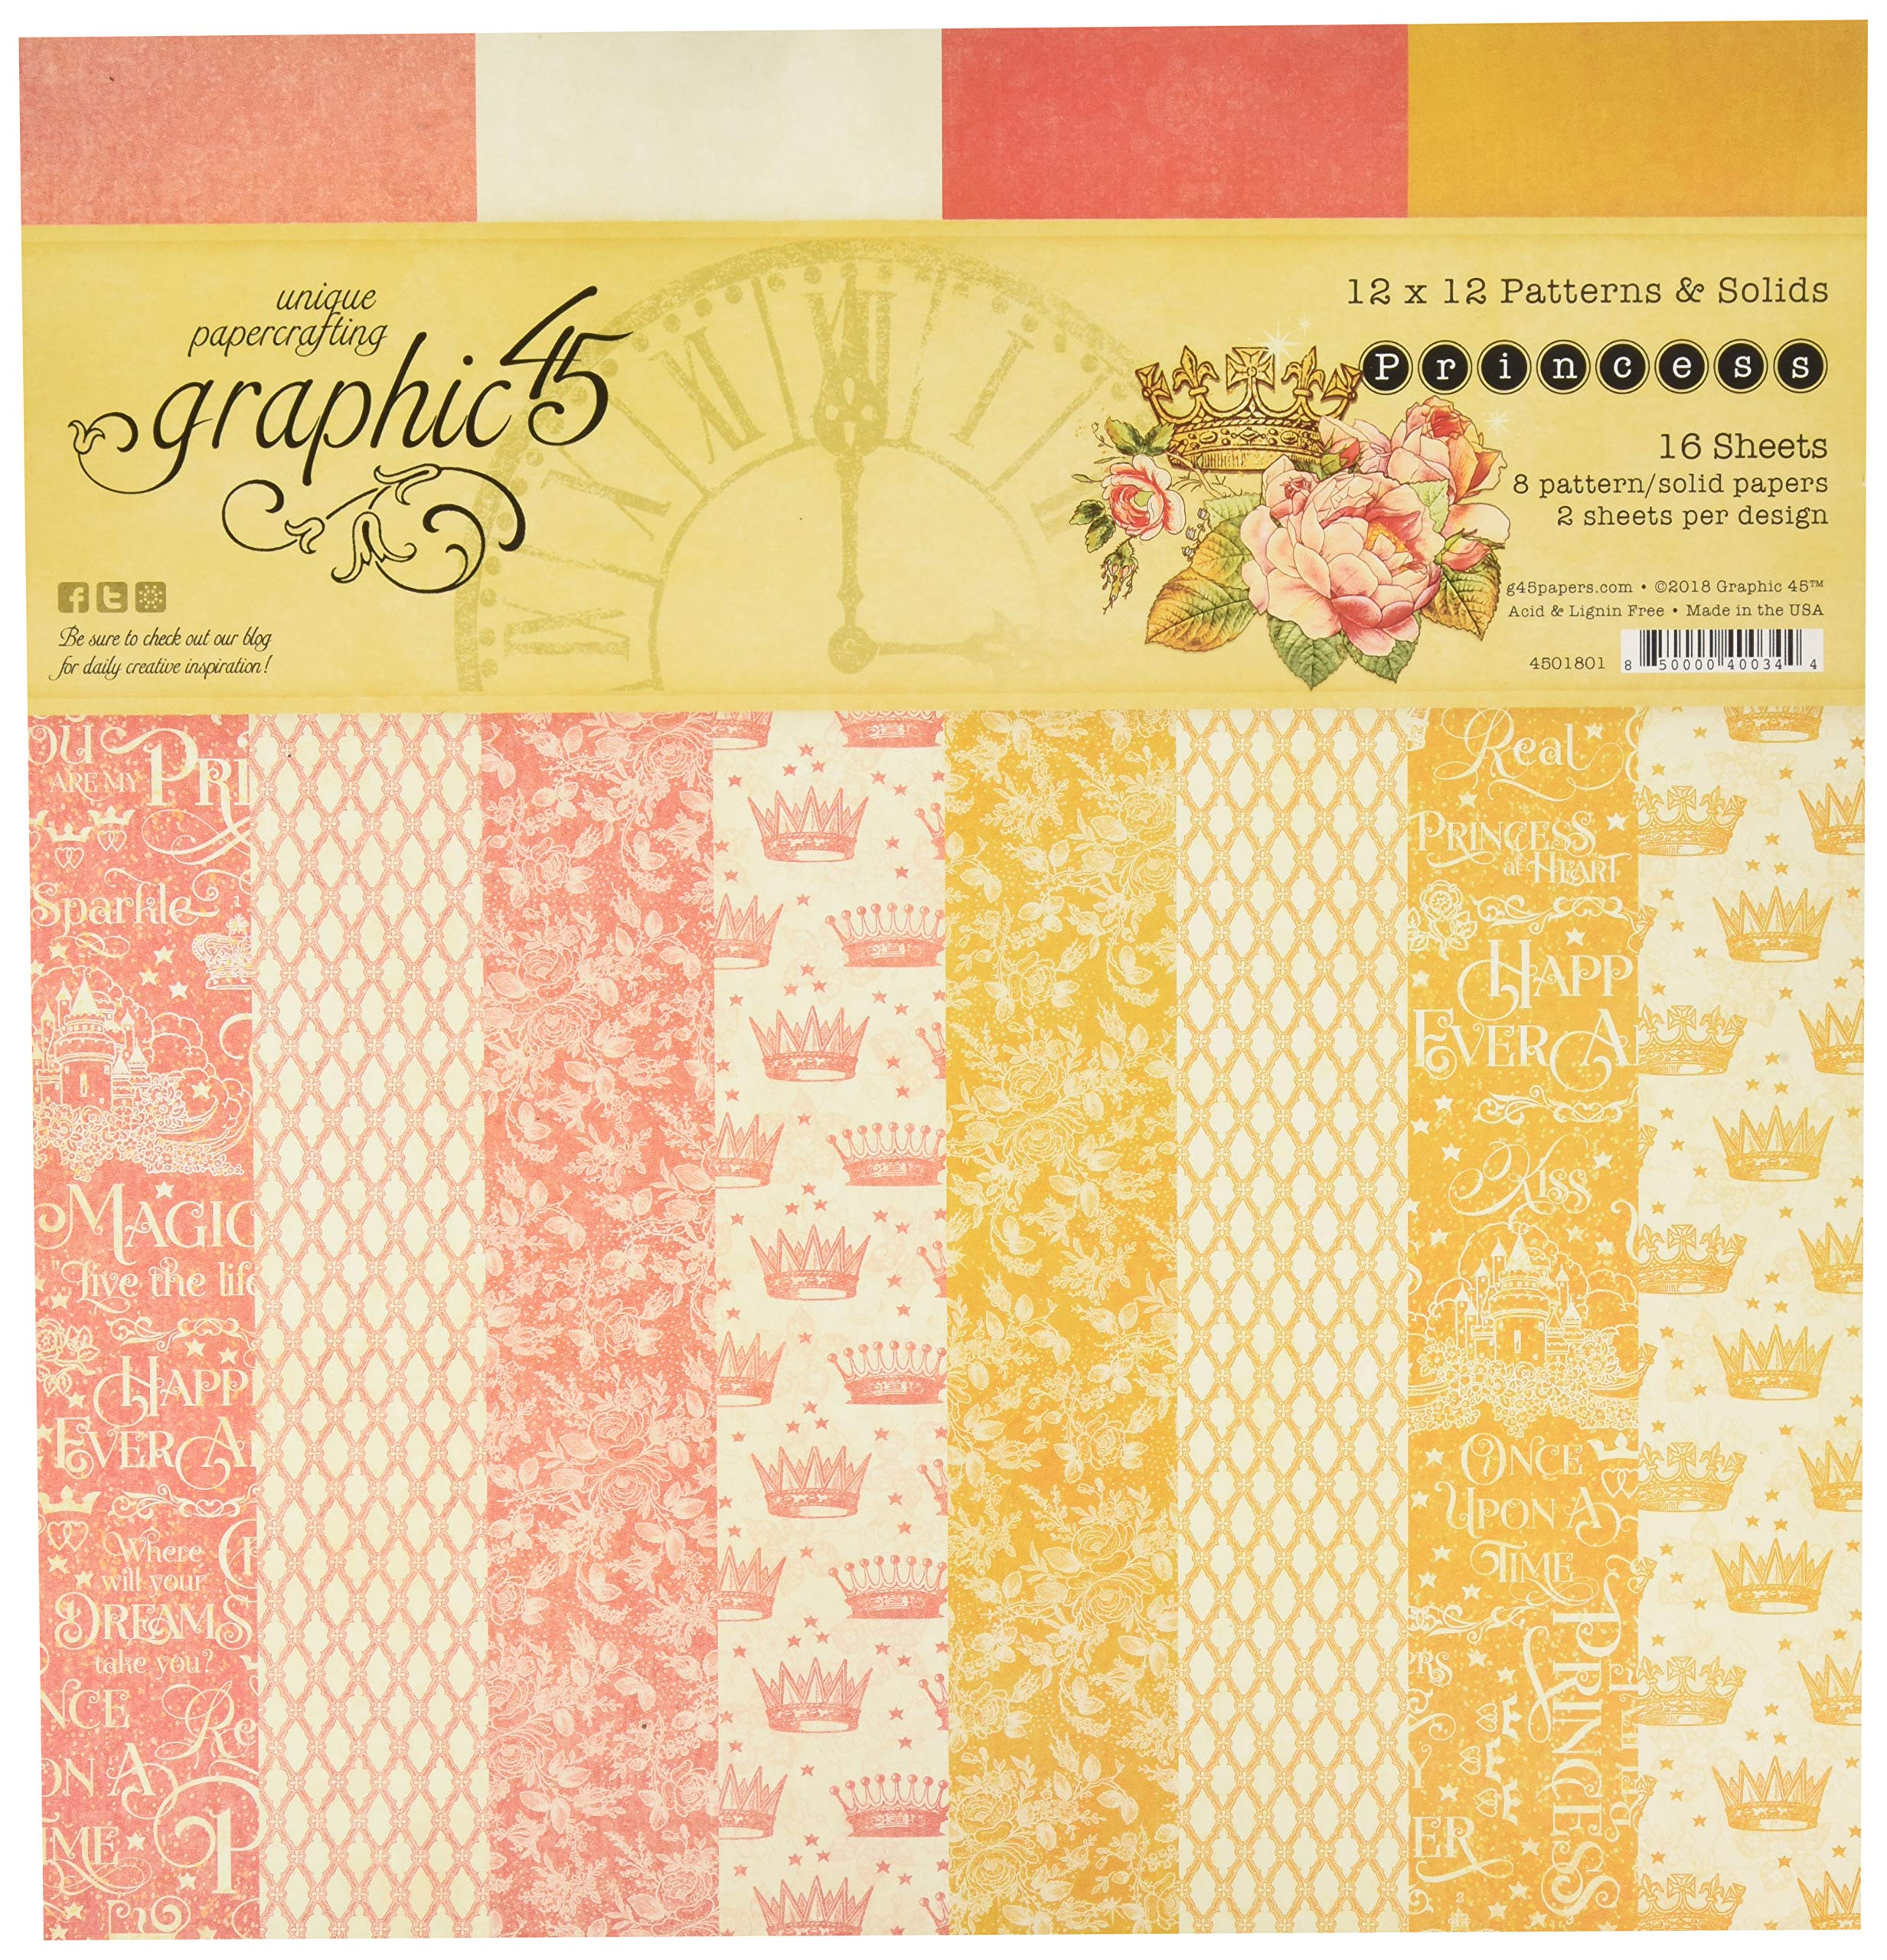 Lot of 5 fun life 12 x 12 scrapbook papers acid and lignin free